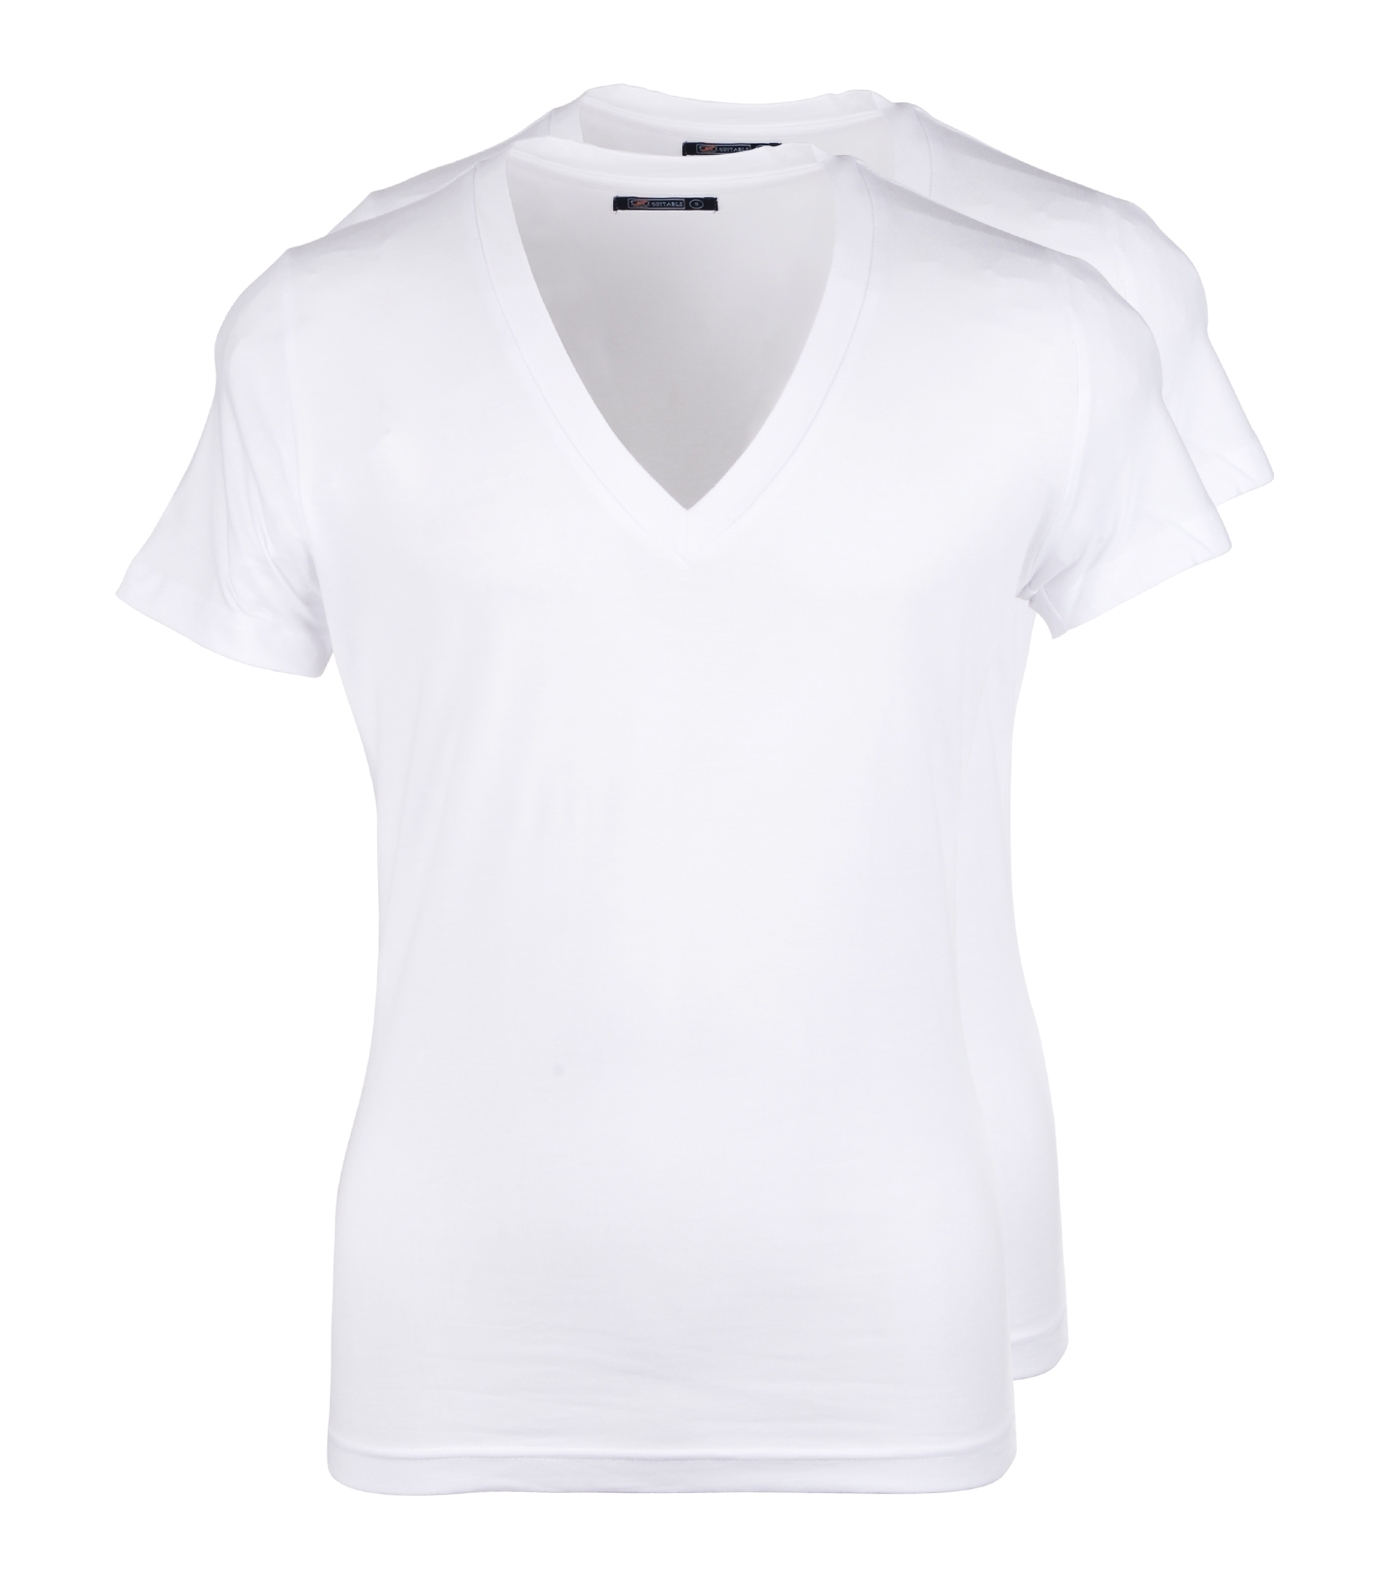 Diepe v hals 2 pack stretch t shirt for Designhotel maastricht comfort xl